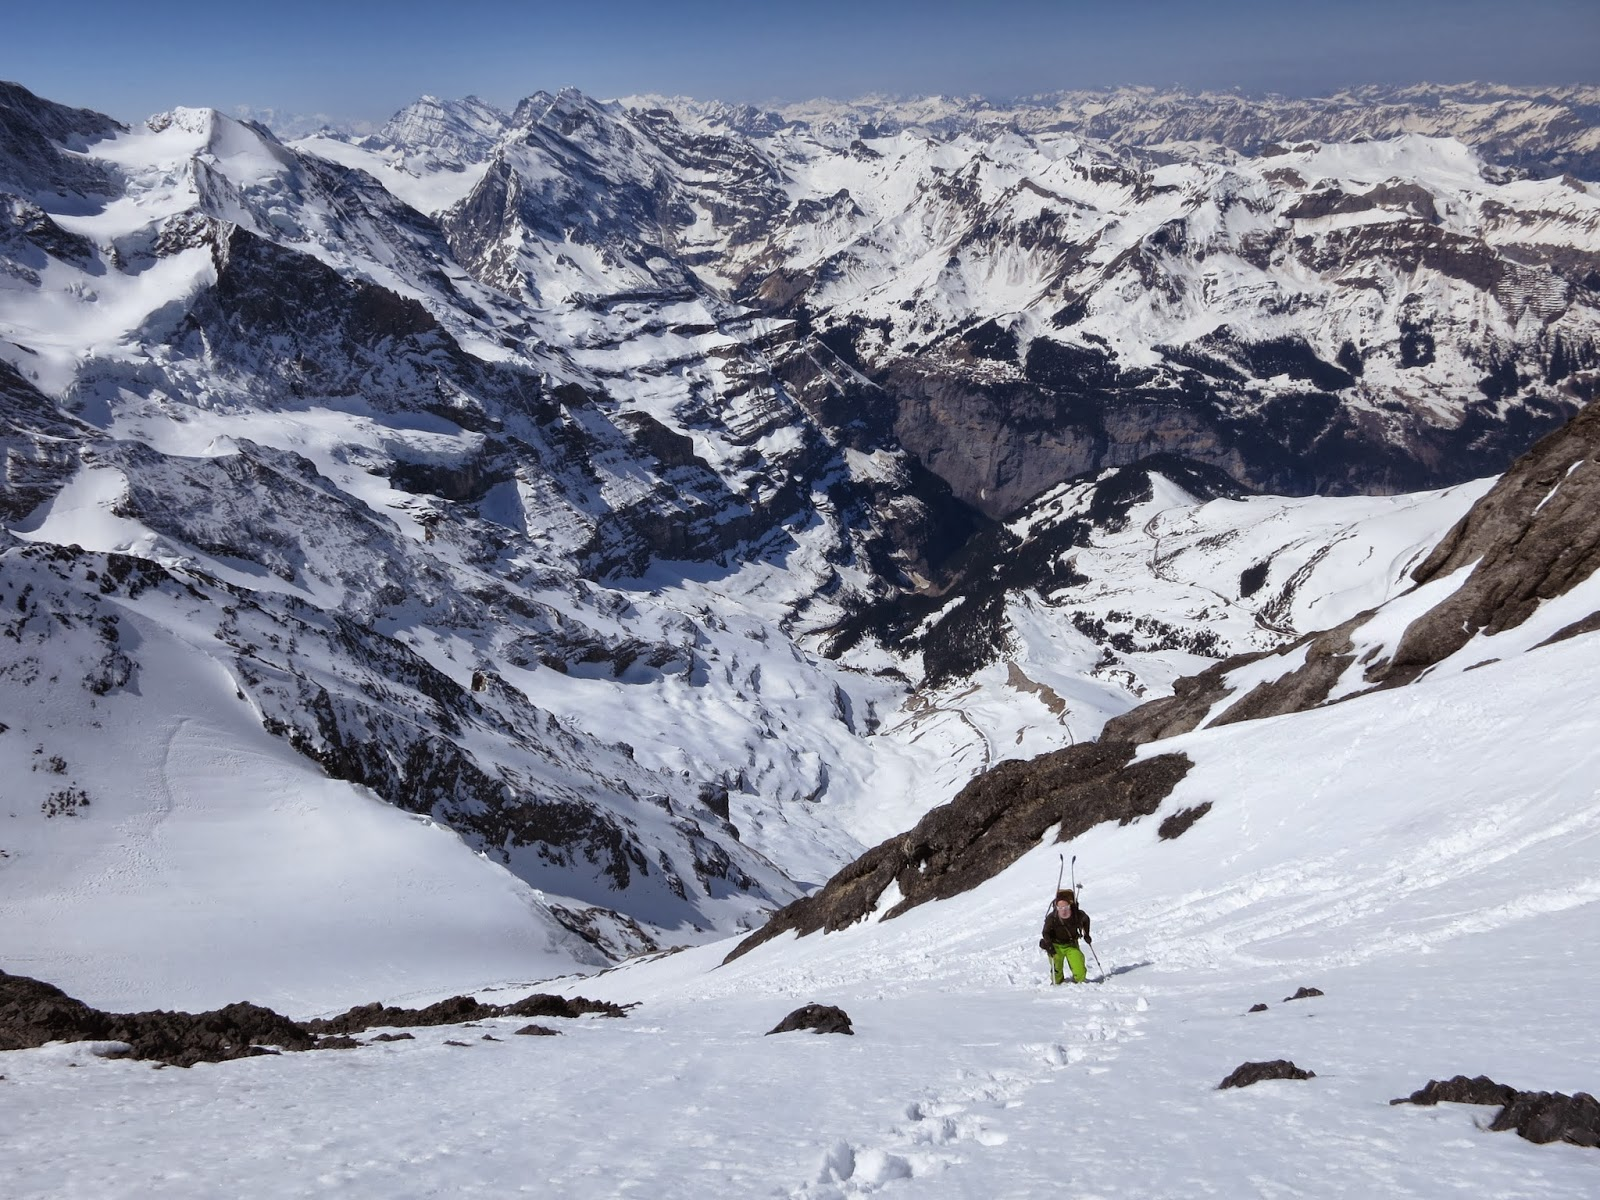 Climbing the West face of the Eiger & Scottish Climbers: Un-pisted Alpine: 3 Days of Steep Skiing